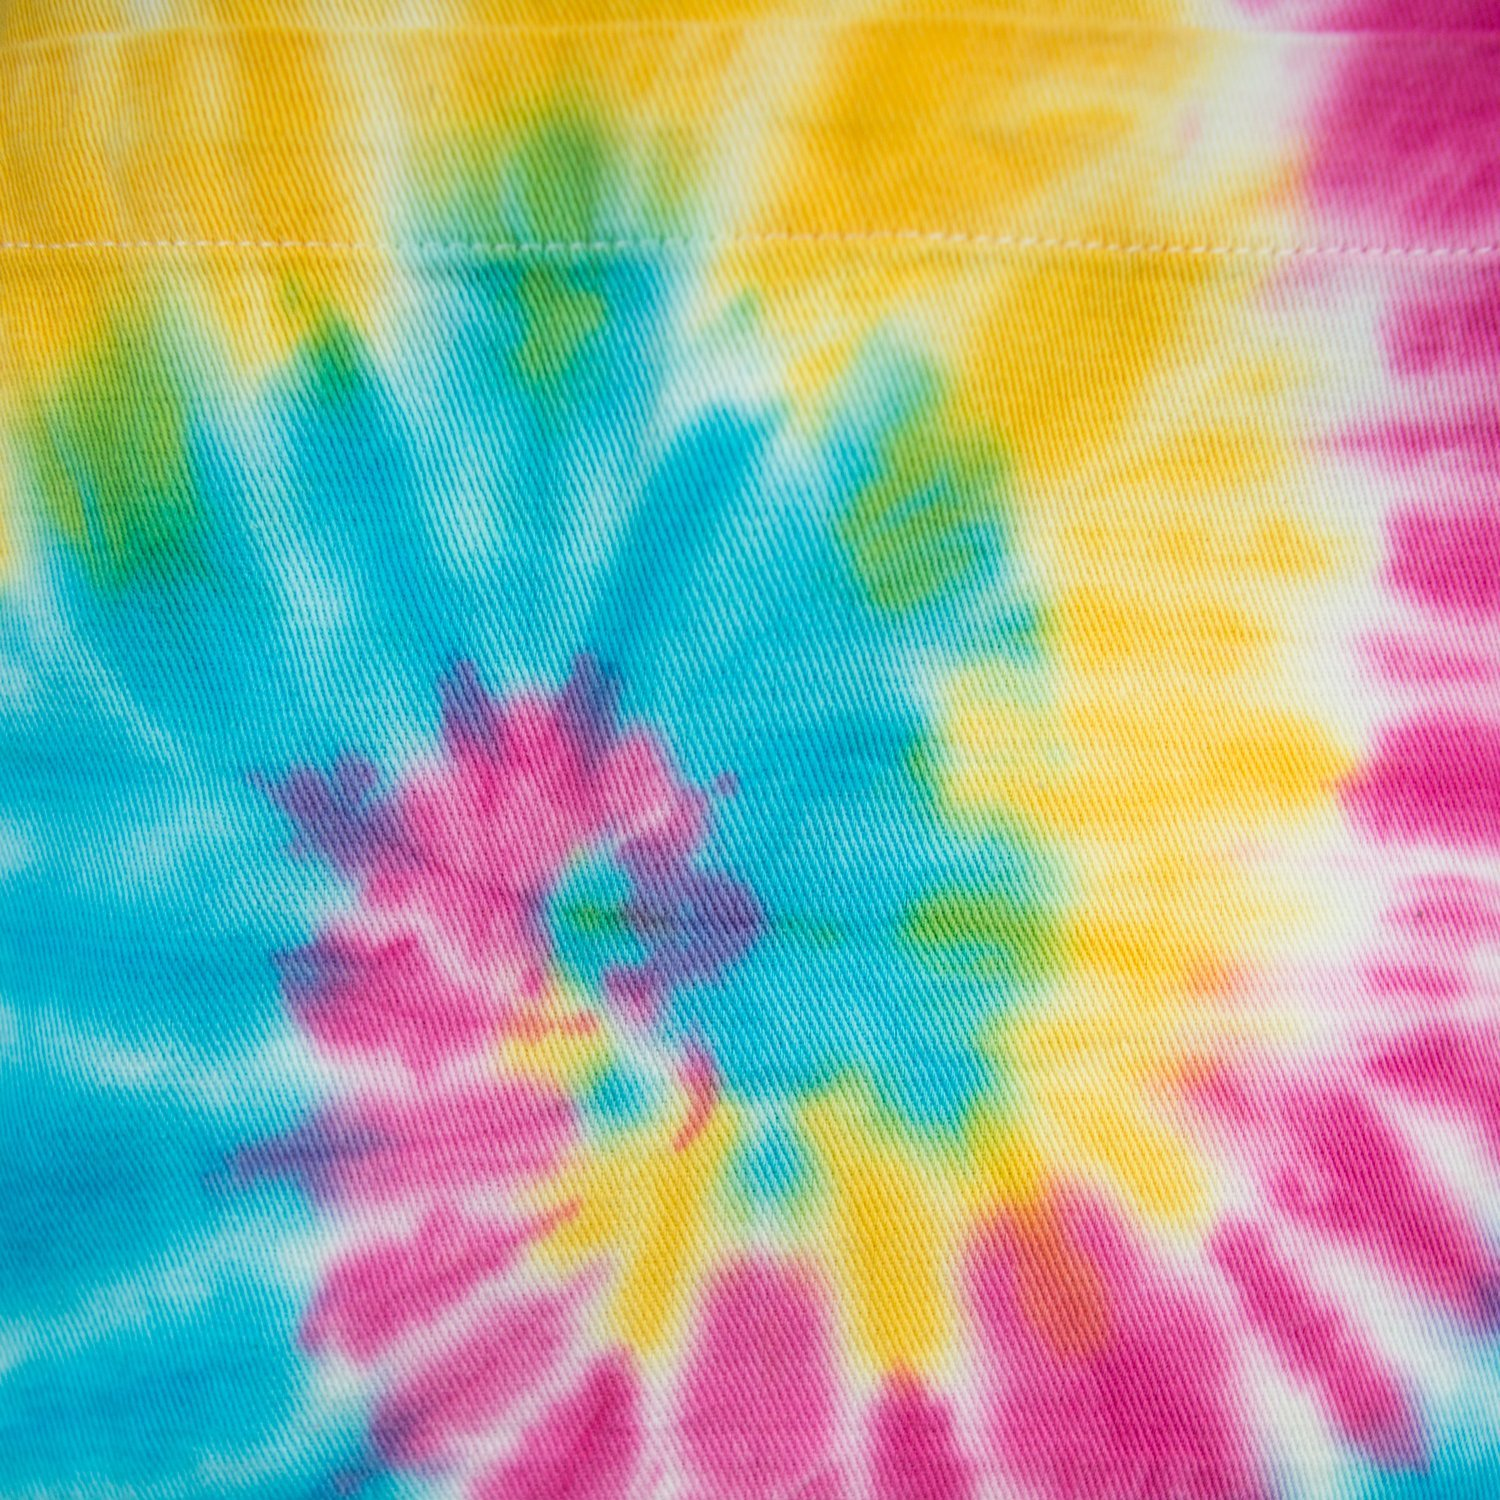 Crafting BBQ-Rainbow Men and Women Apron for Cooking Gardening Baking 32 x 28 DII Cotton Adjustable Tie Dye Kitchen Chef Apron with Pocket and Extra Long Ties